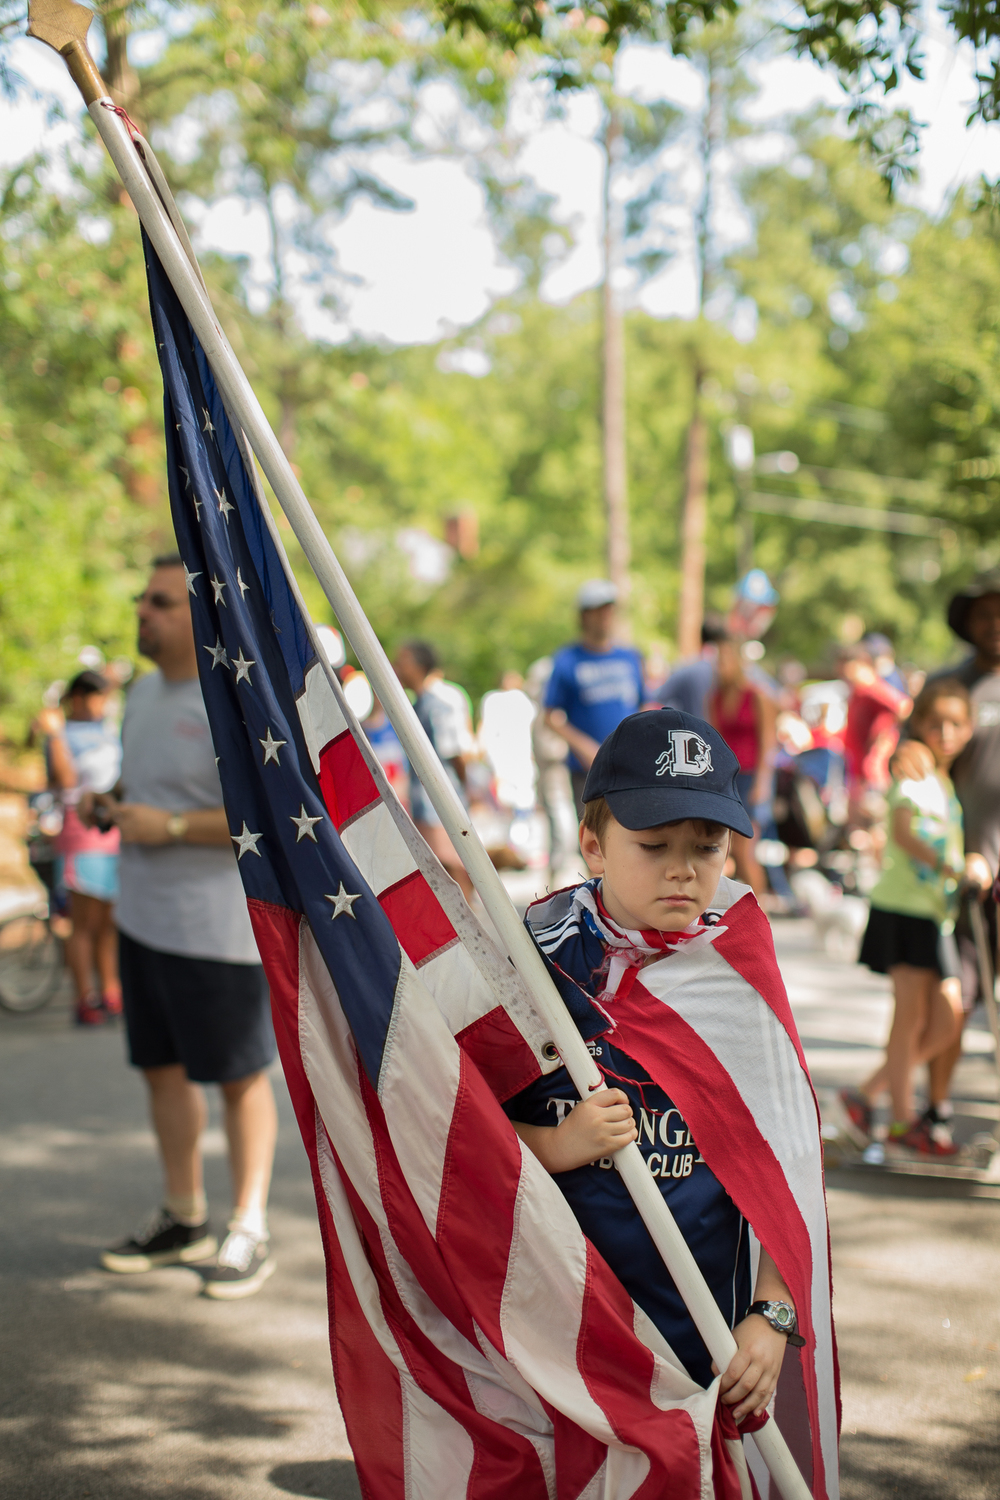 The Watts-Hillandale Neighborhood Independence Day Parade: Patriotic pageantry at Oval Park in Durham.